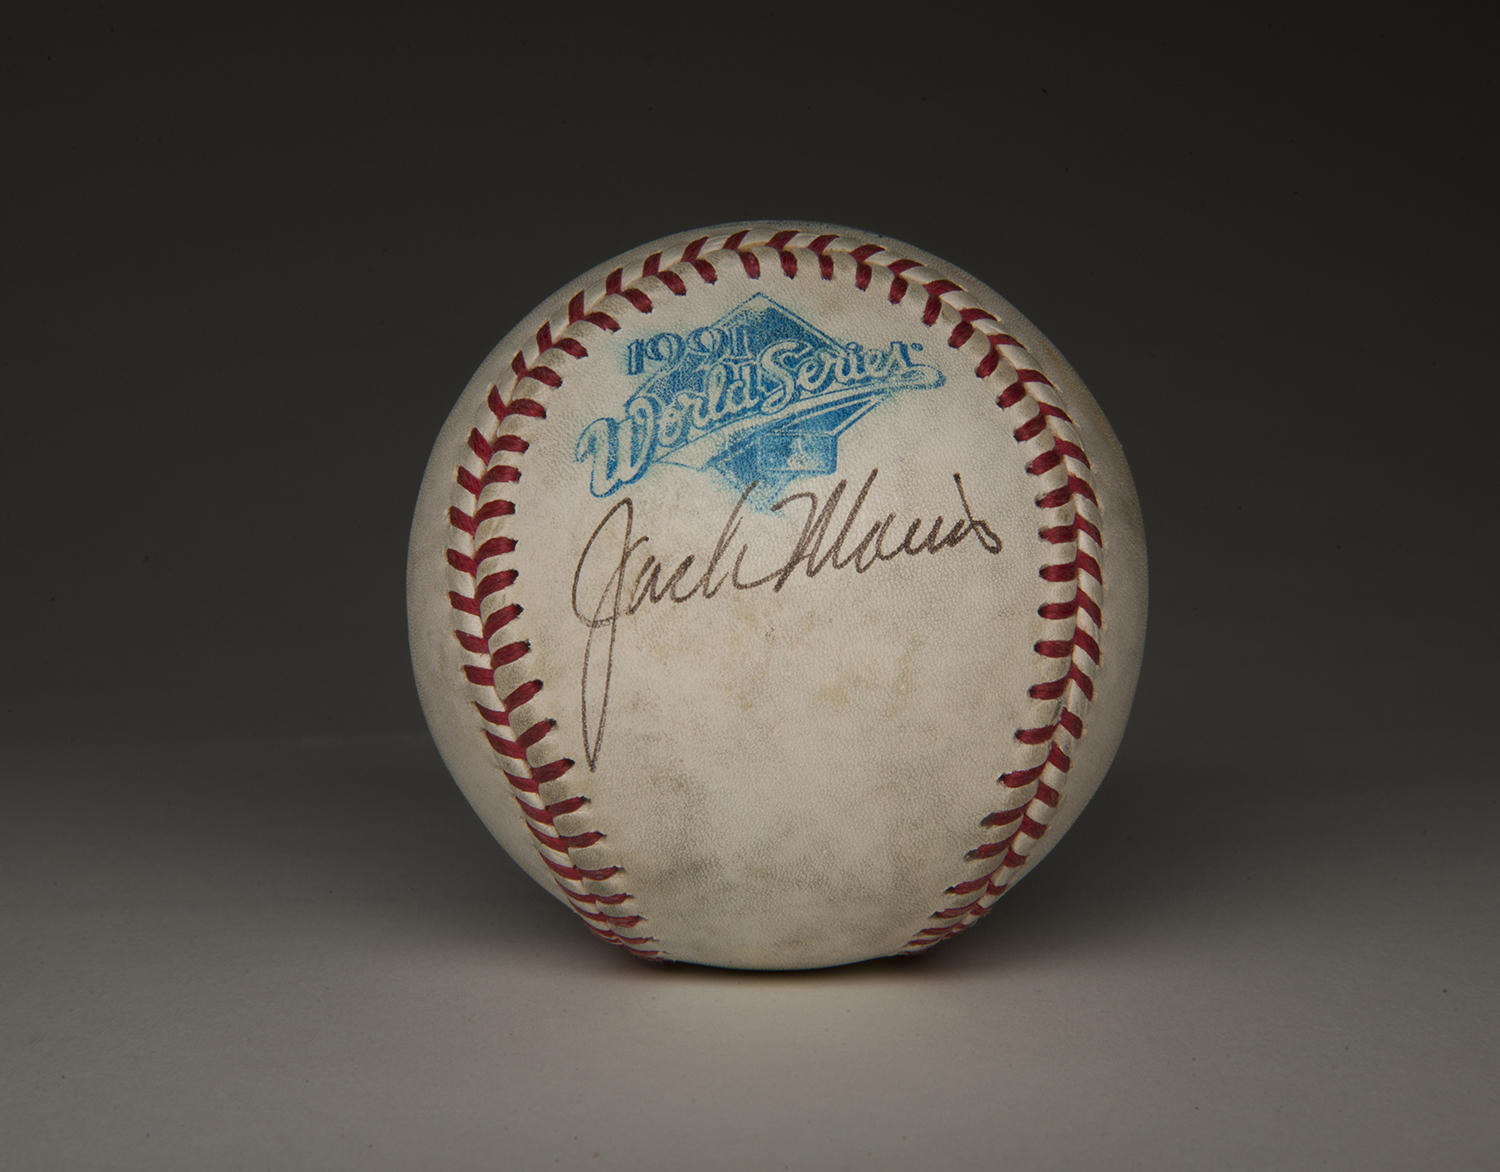 "Jack Morris pitched 10 shutout innings in Game 7 of the 1991 World Series. He signed this game-used baseball following the victory that gave the Twins the championship. <a href=""http://collection.baseballhall.org/islandora/object/islandora%3A262563"">PASTIME</a>  (Milo Stewart Jr. / National Baseball Hall of Fame)"